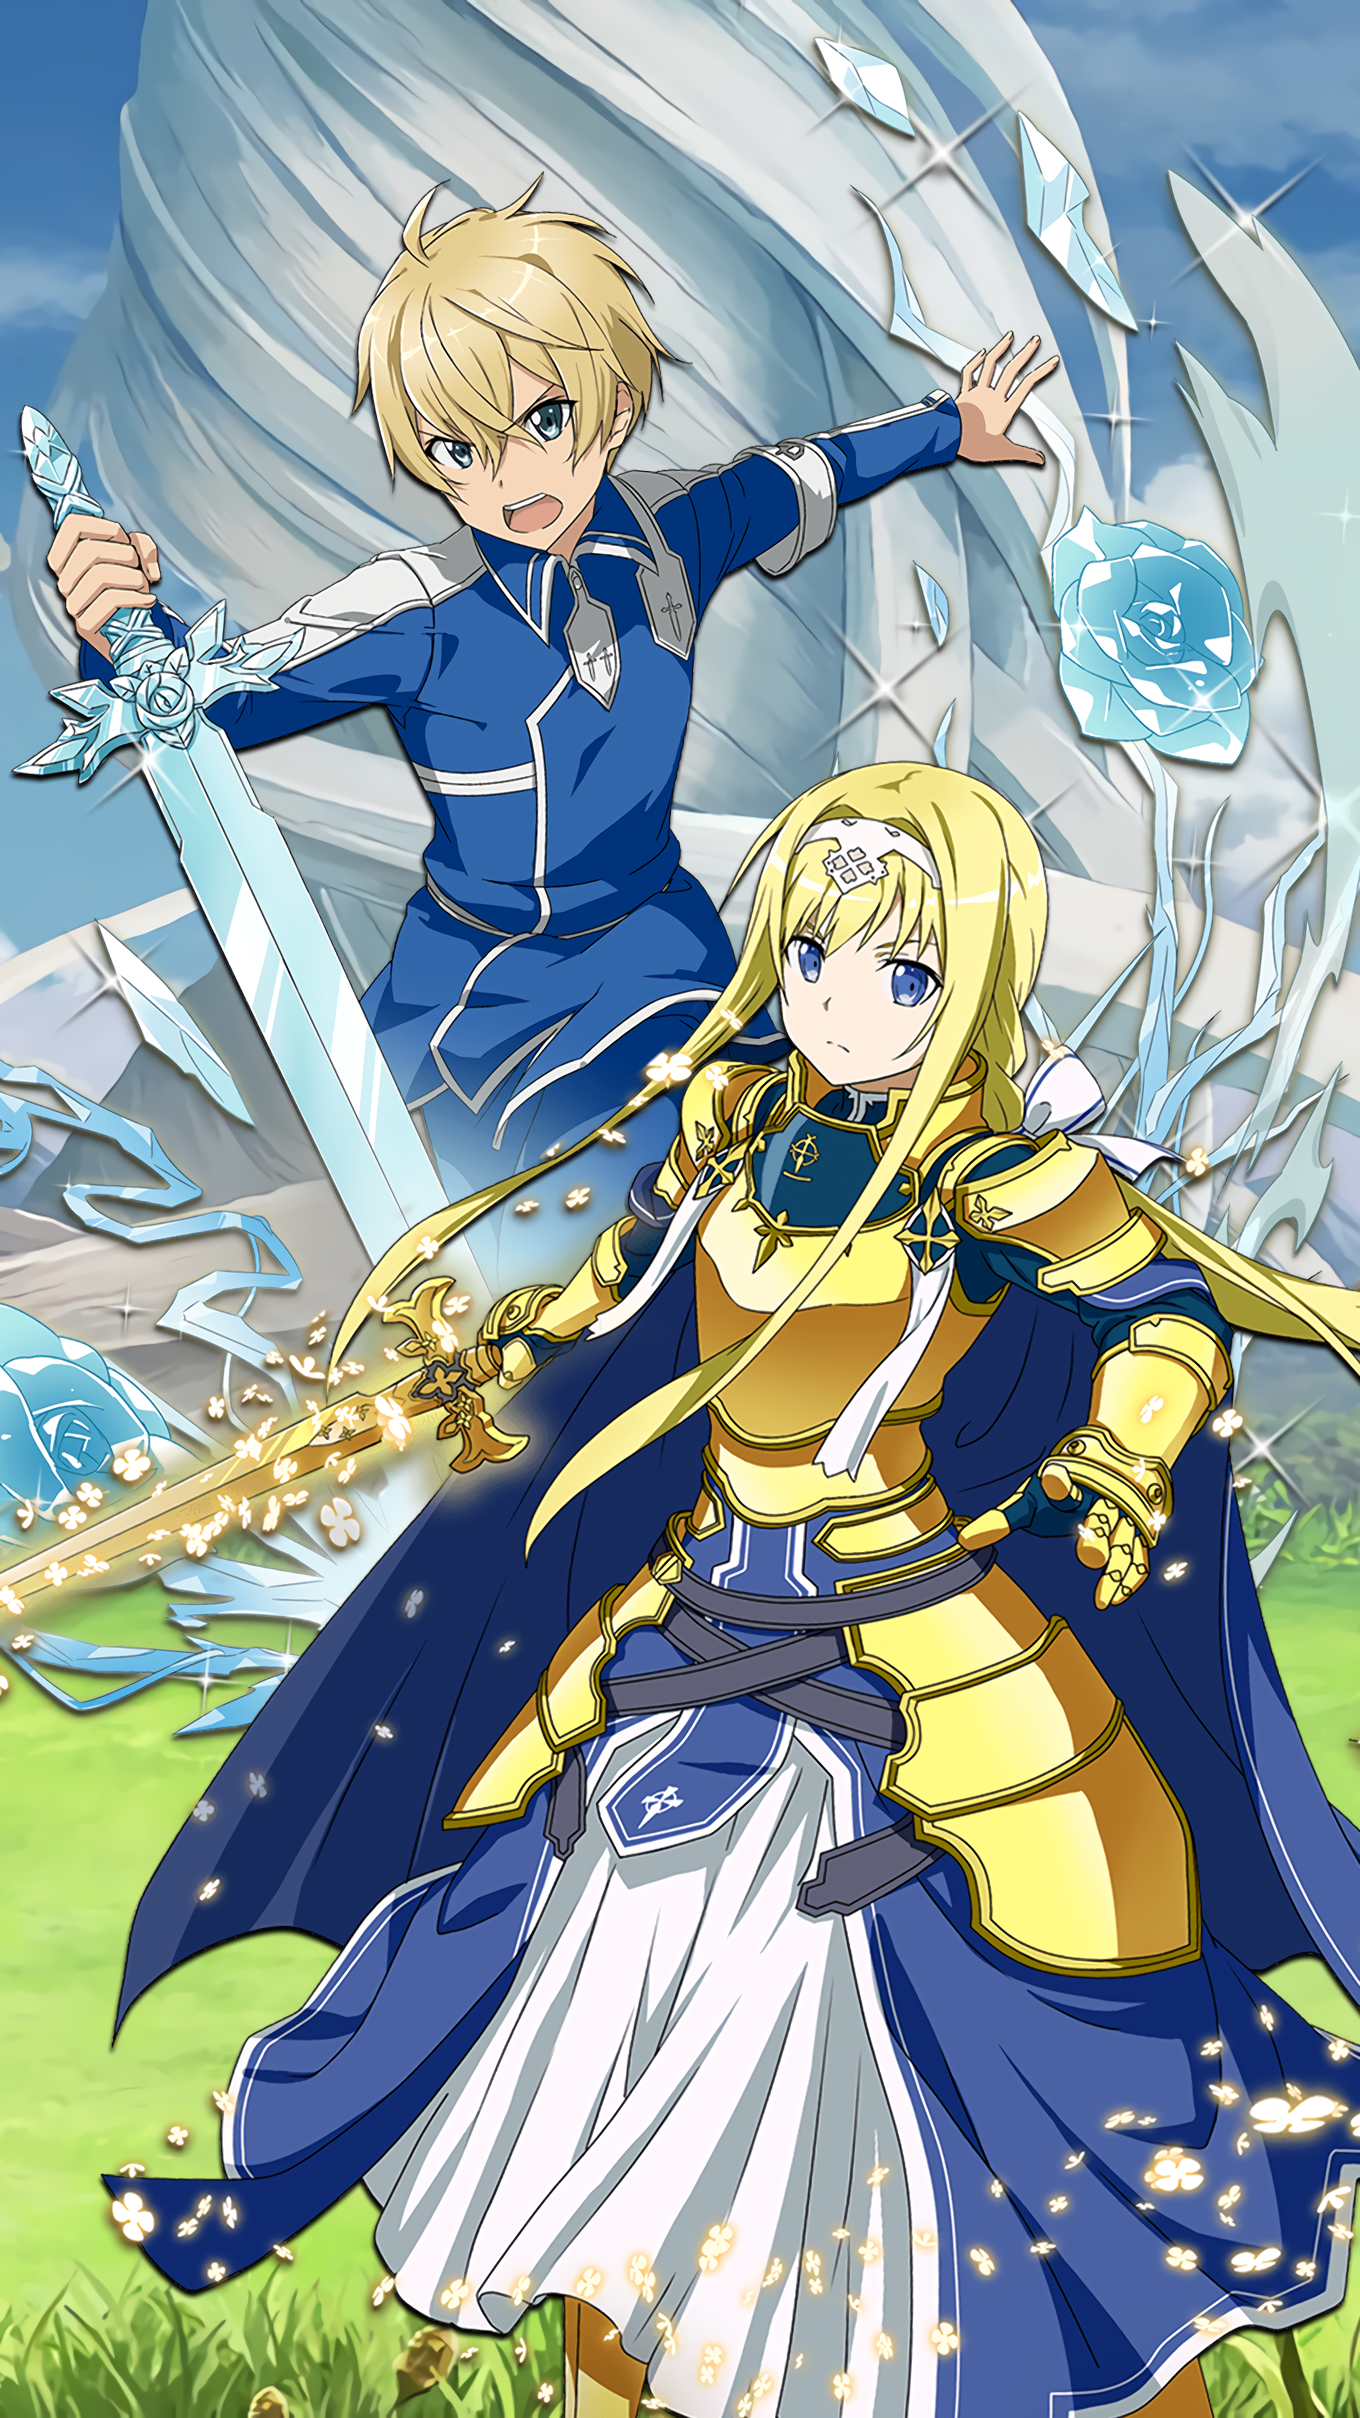 Sword Art Online: Alicization - War of Underworld - SAO Alicization Part 2 (2019)